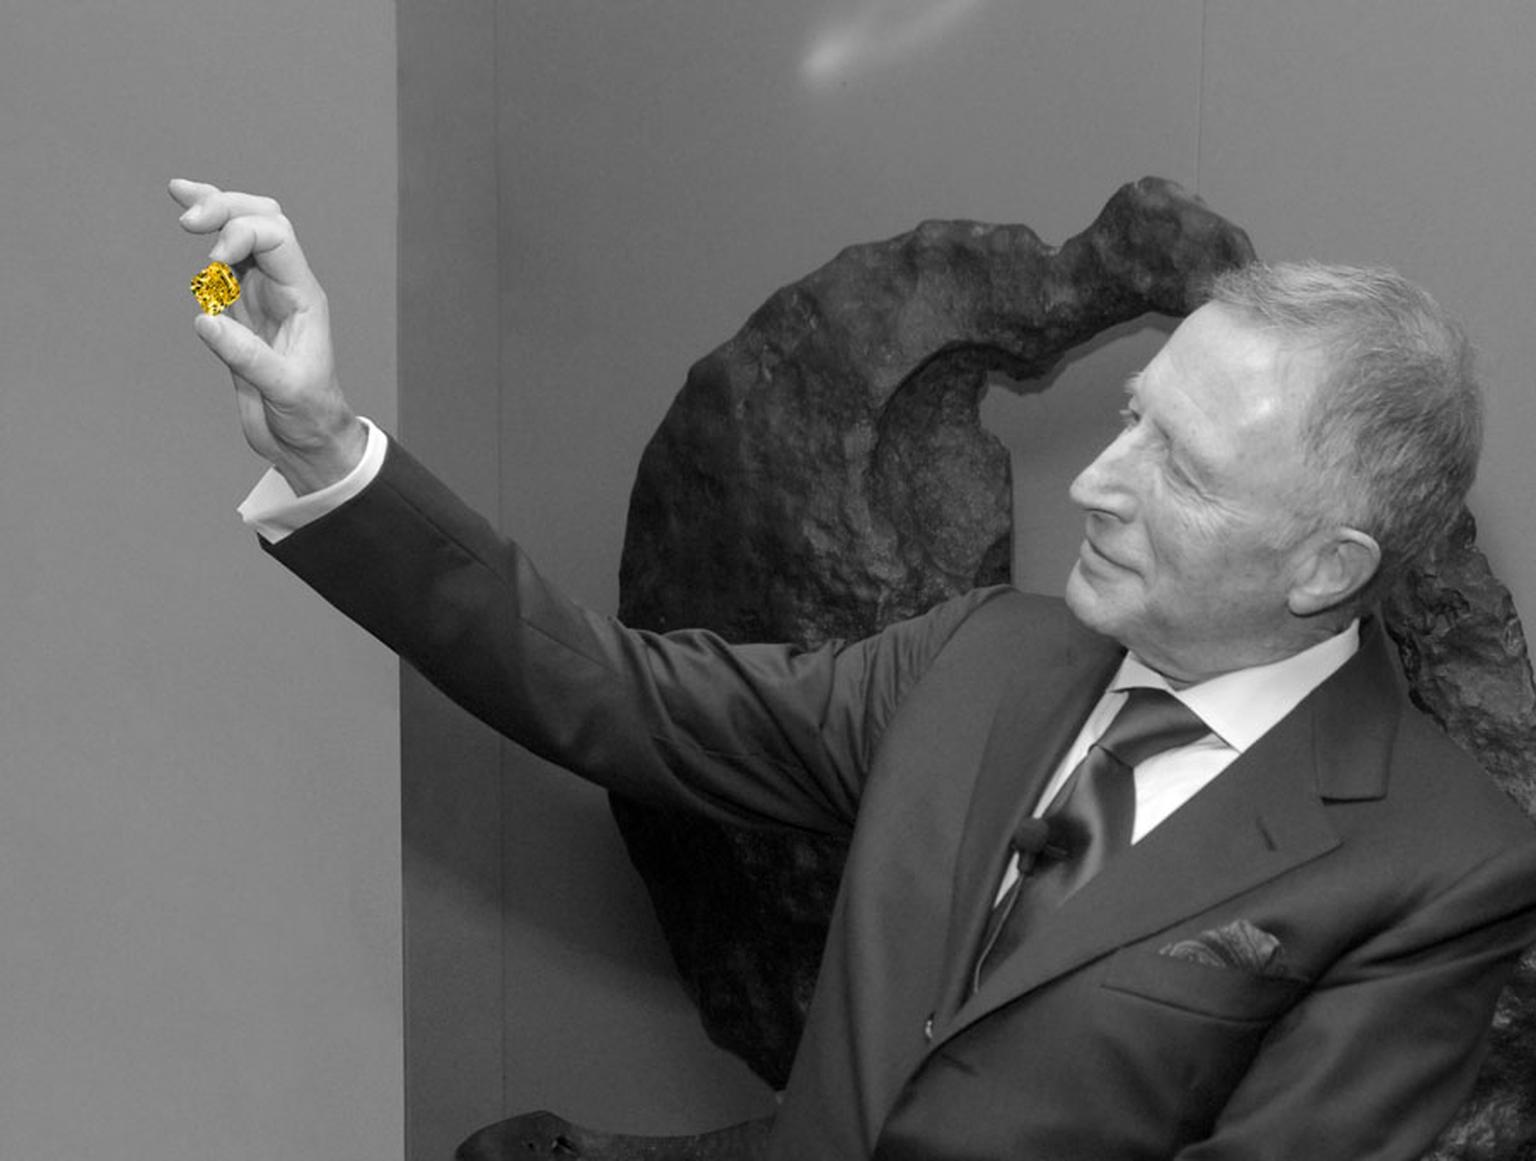 On 21 April 2014, Graff Diamonds received a coveted Queen's Award, less than a year after chairman Lawrence Graff, pictured, was awarded an OBE for his services to jewellery